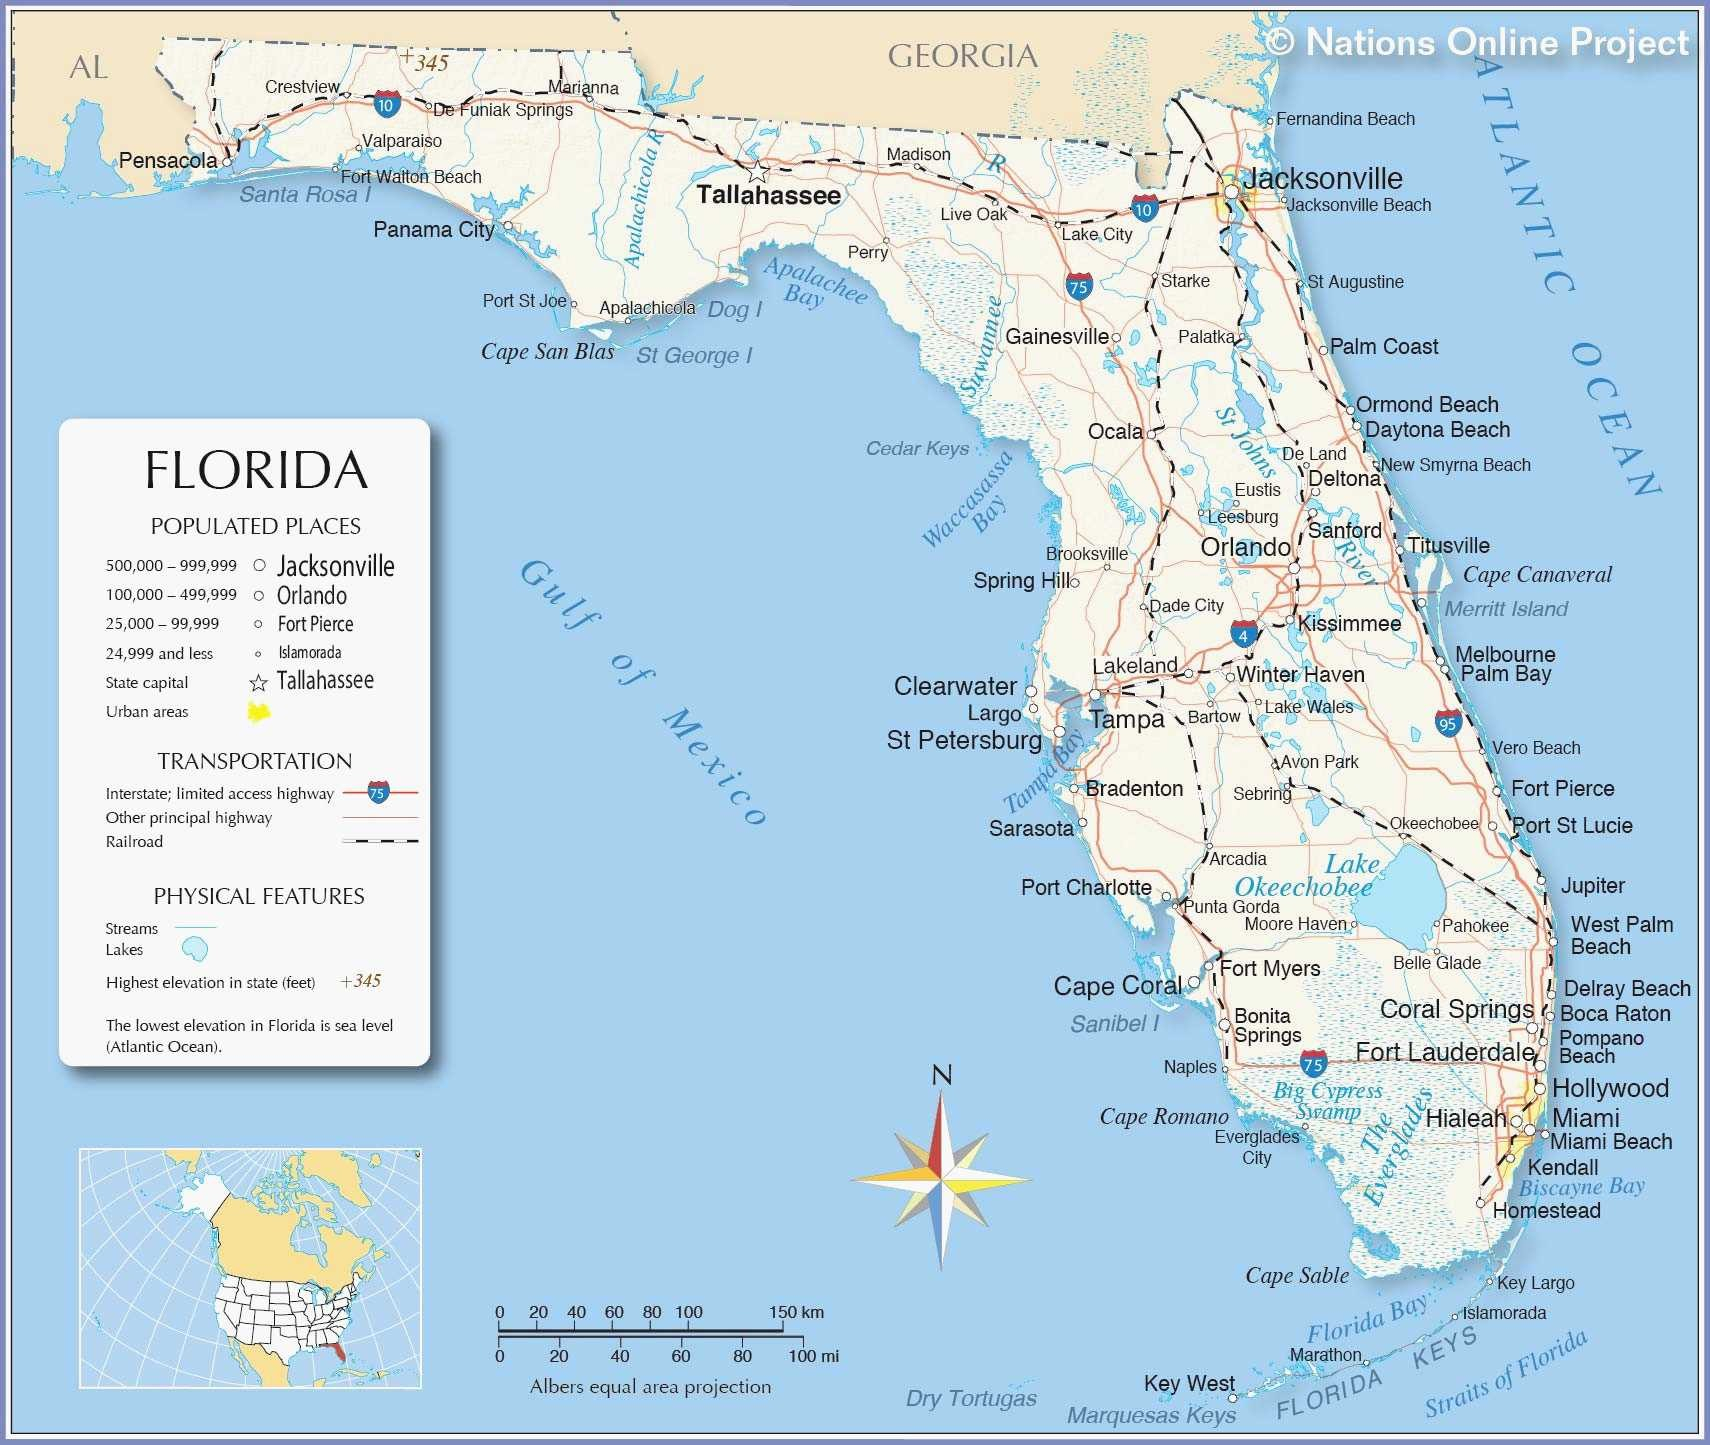 United States Map Orlando Florida Valid Great Clearwater Beach - Where Is Panama City Florida On The Map